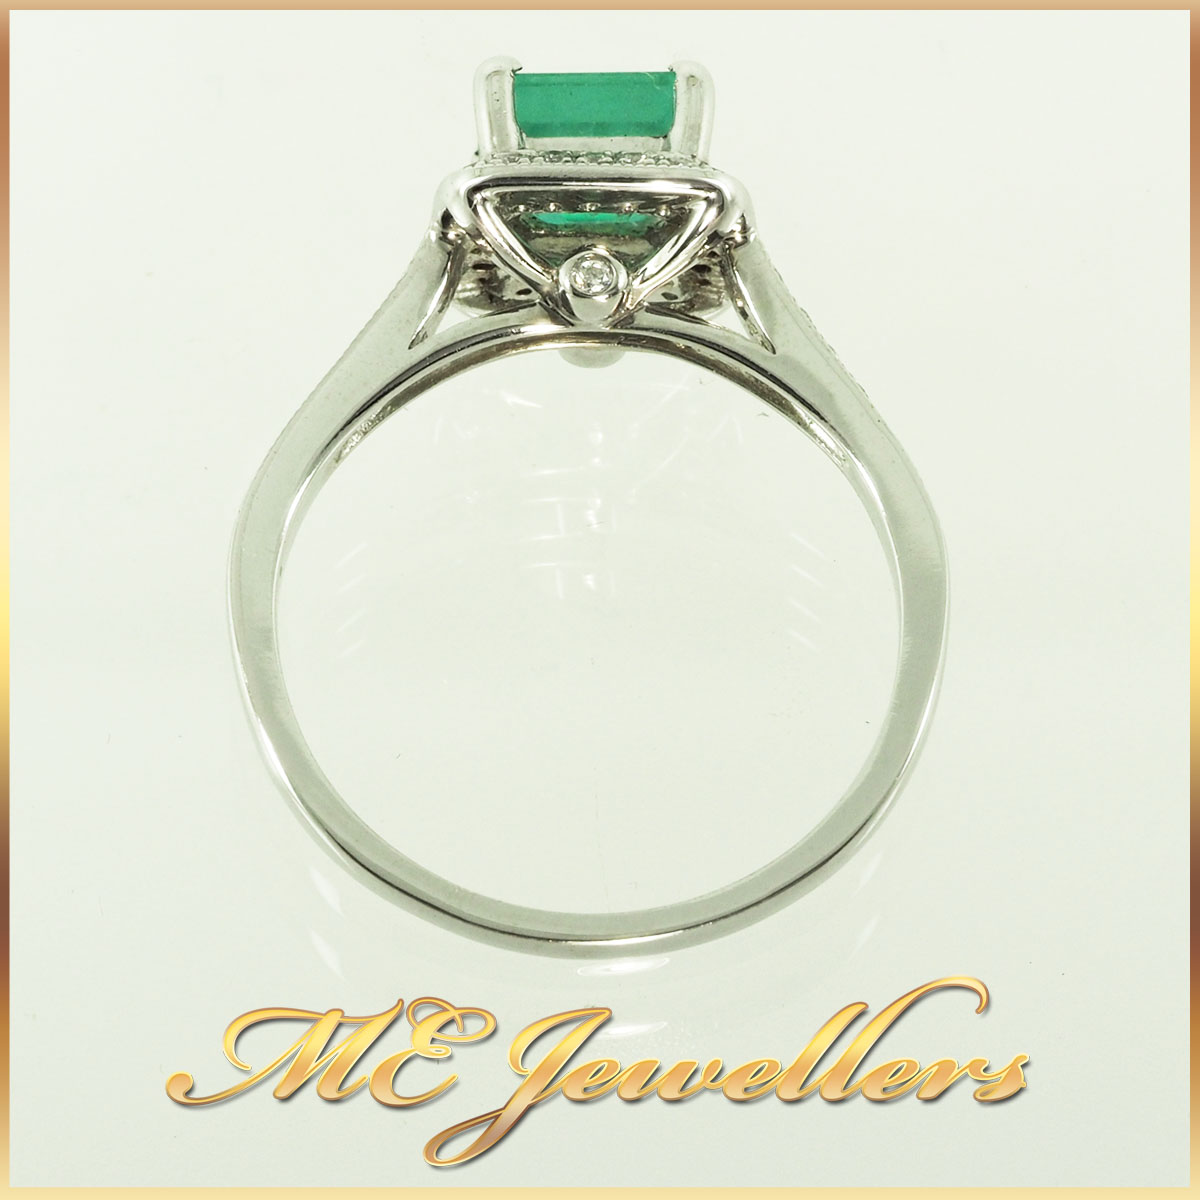 6746 natural-emerald-ring-with-diamond-18k-whg-4